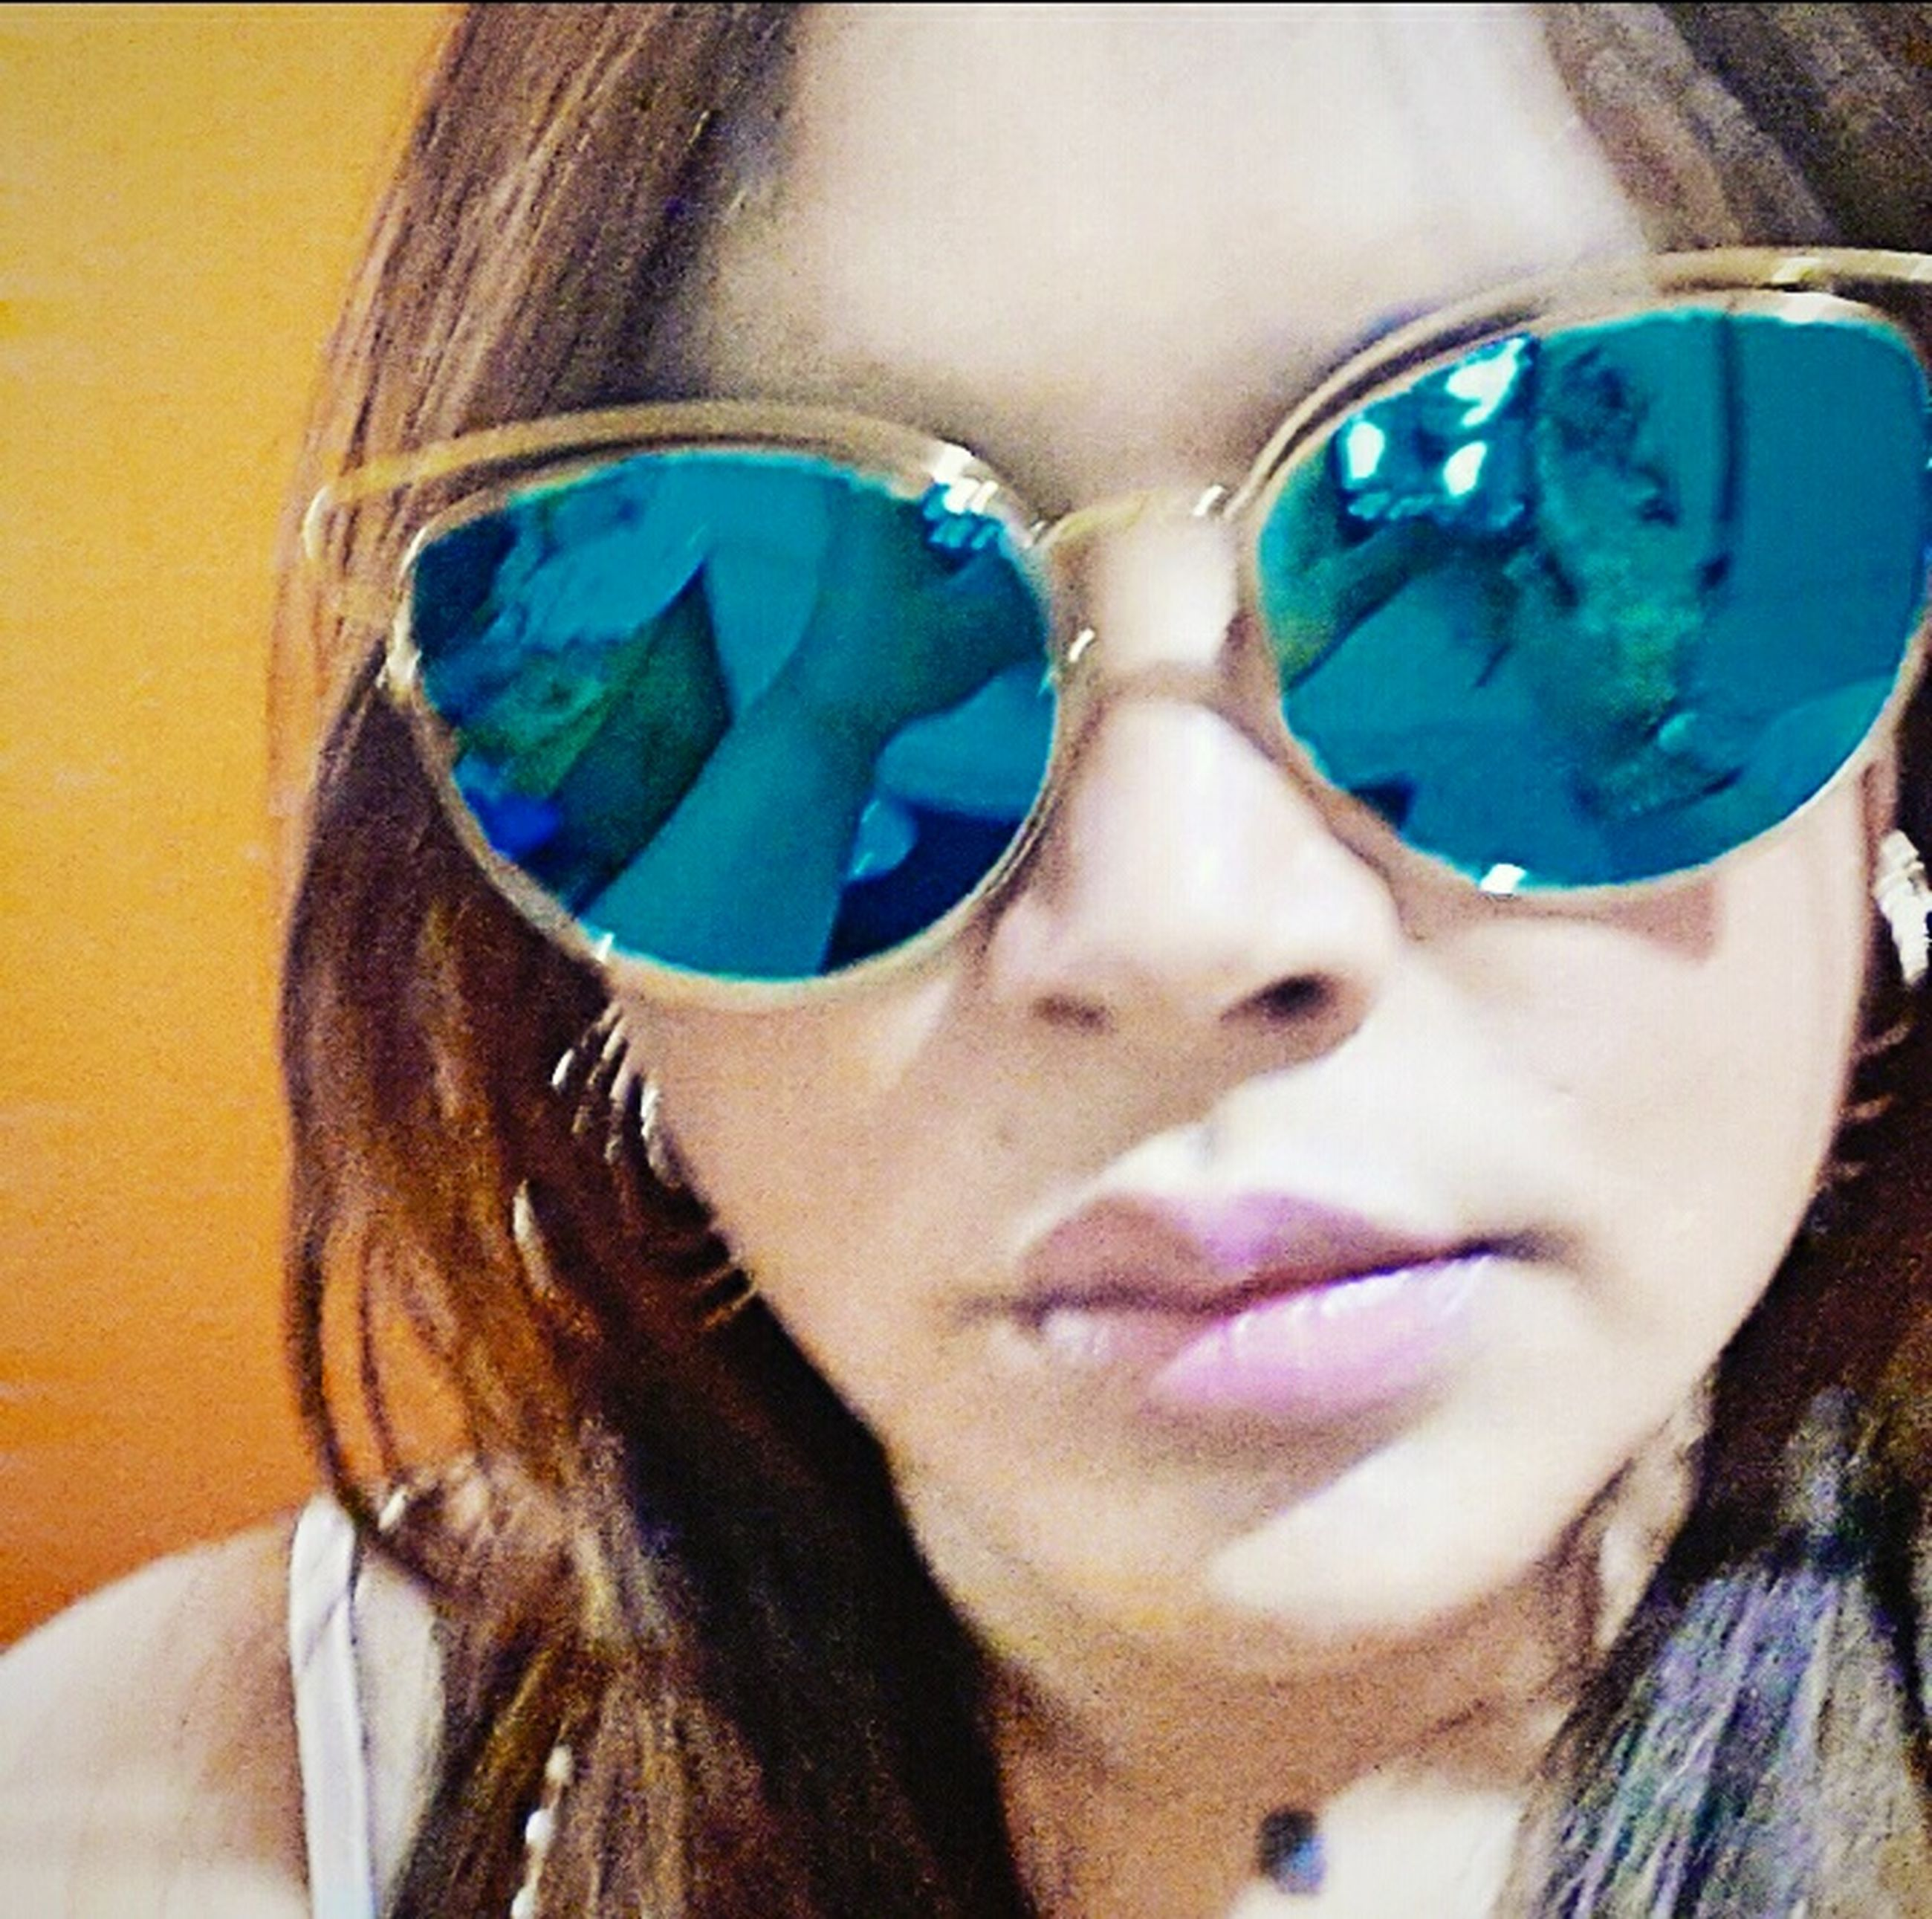 headshot, looking at camera, portrait, person, young adult, lifestyles, close-up, leisure activity, front view, young women, human face, sunglasses, long hair, head and shoulders, indoors, blue, focus on foreground, smiling